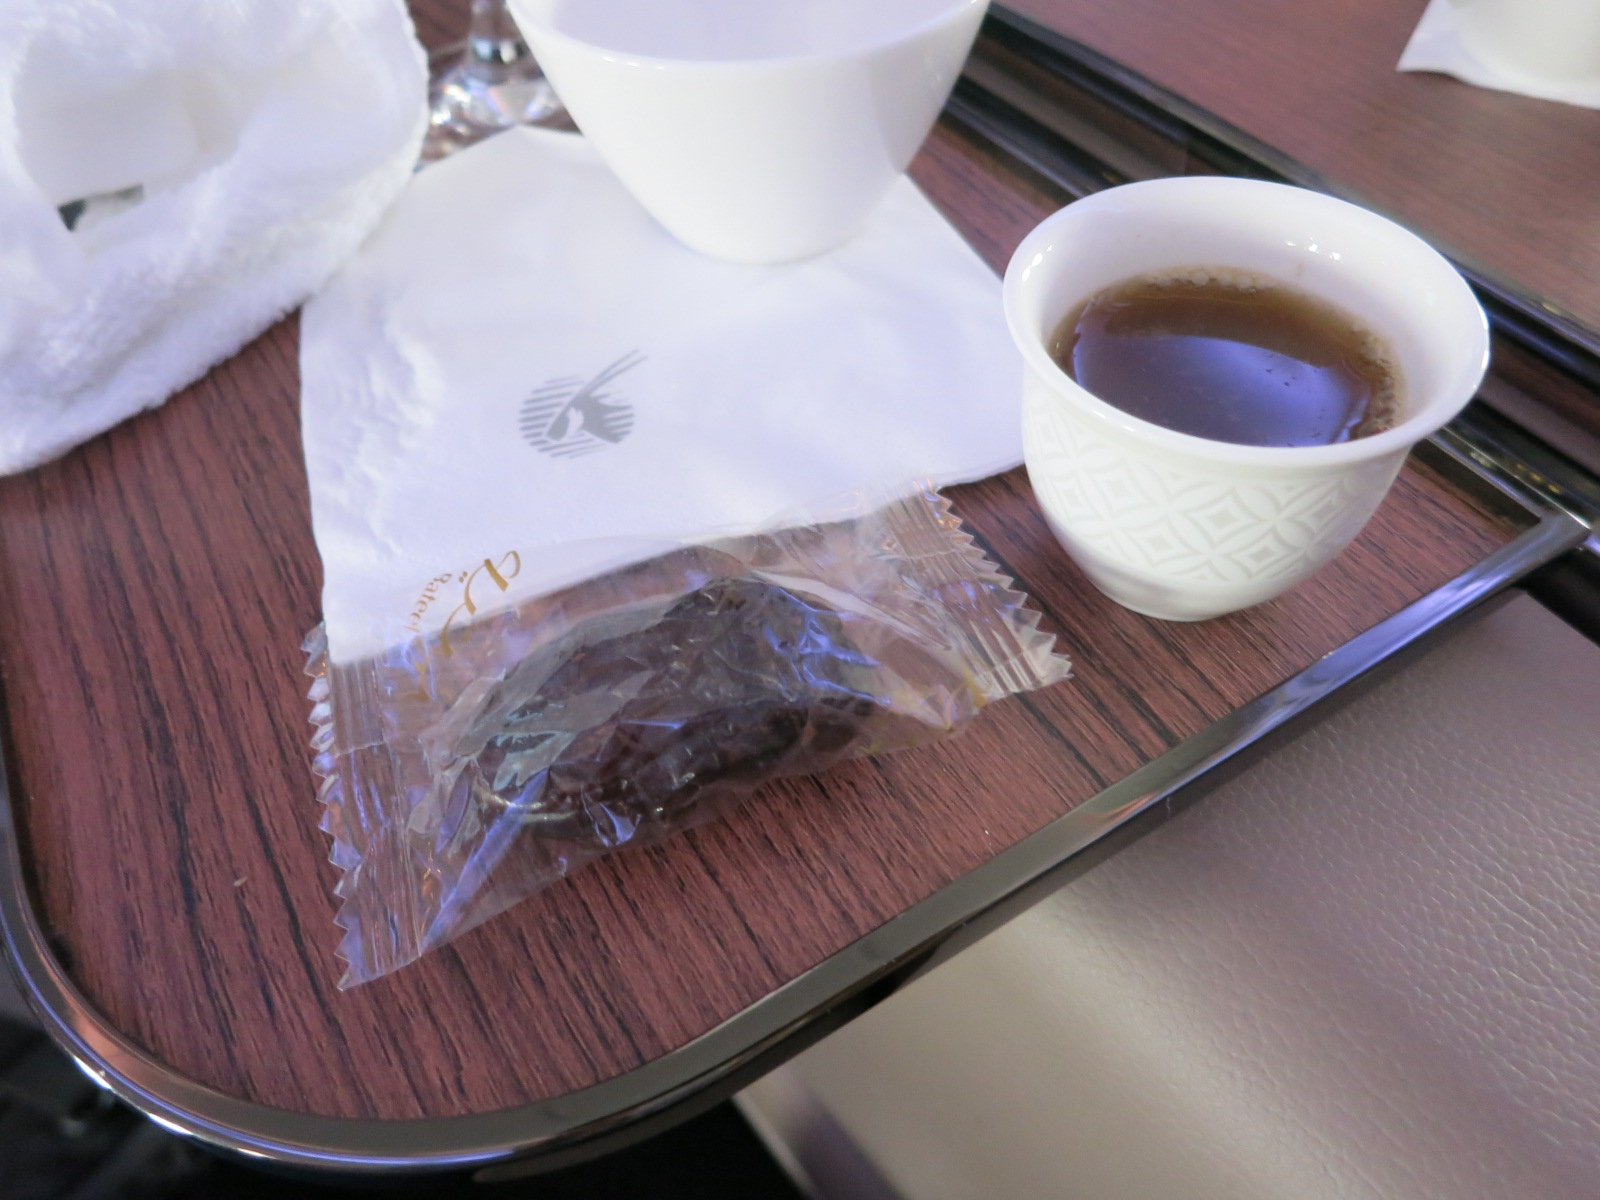 Qatar Airways A380 first class Bangkok-Doha coffee and dates